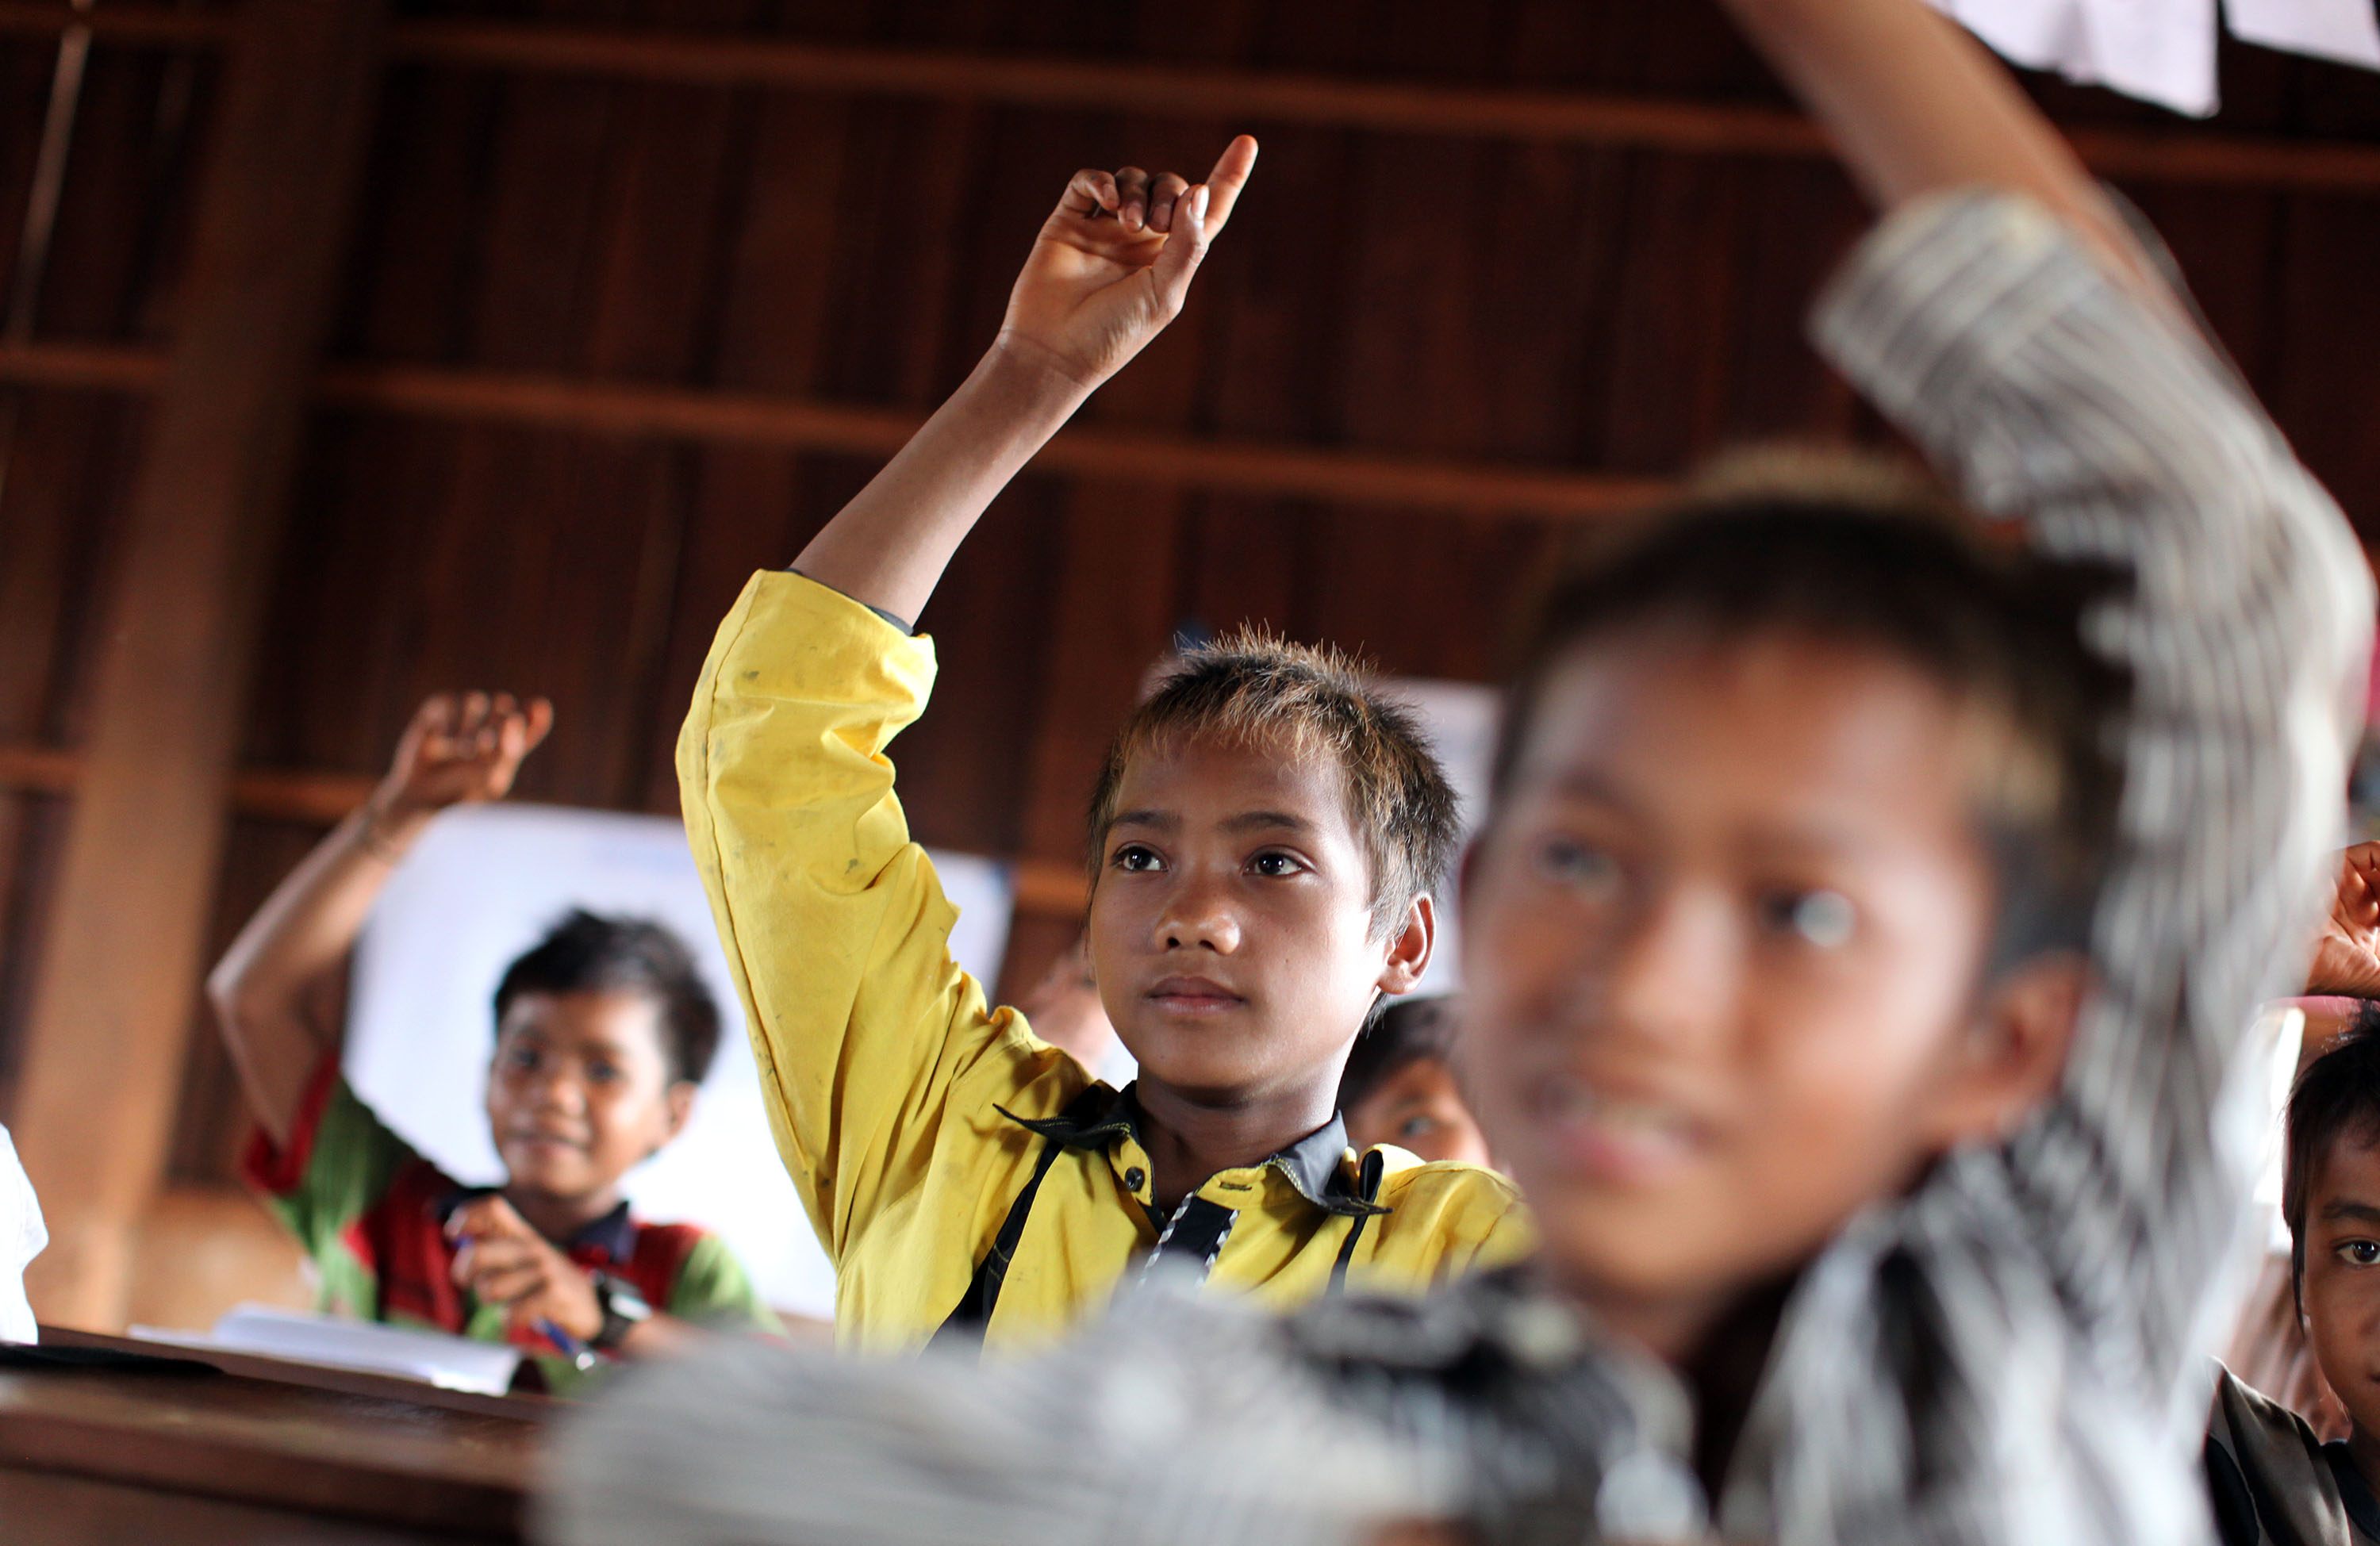 CARE's Highland Community Program allows indigenous children to begin learning in their native language, with the national language Khmer phased in over progressive year levels.